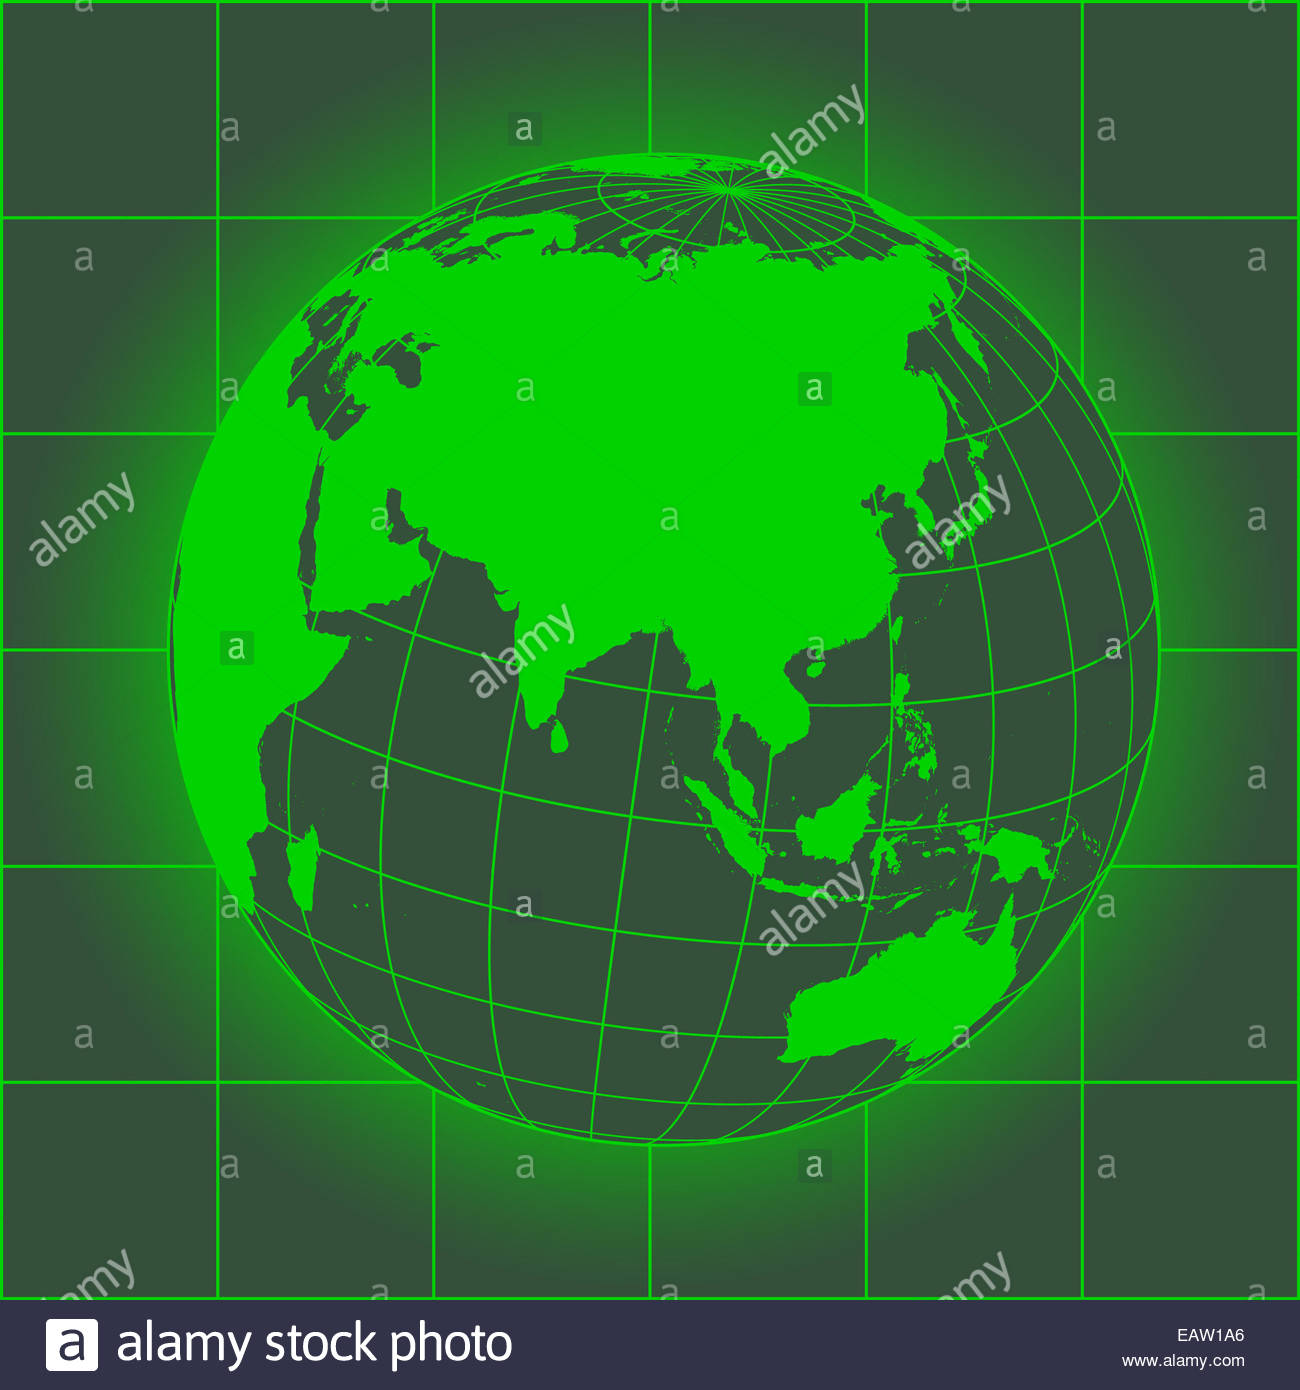 Green asia map australia russia africa north pole earth globe green asia map australia russia africa north pole earth globe old style map of the world gumiabroncs Images